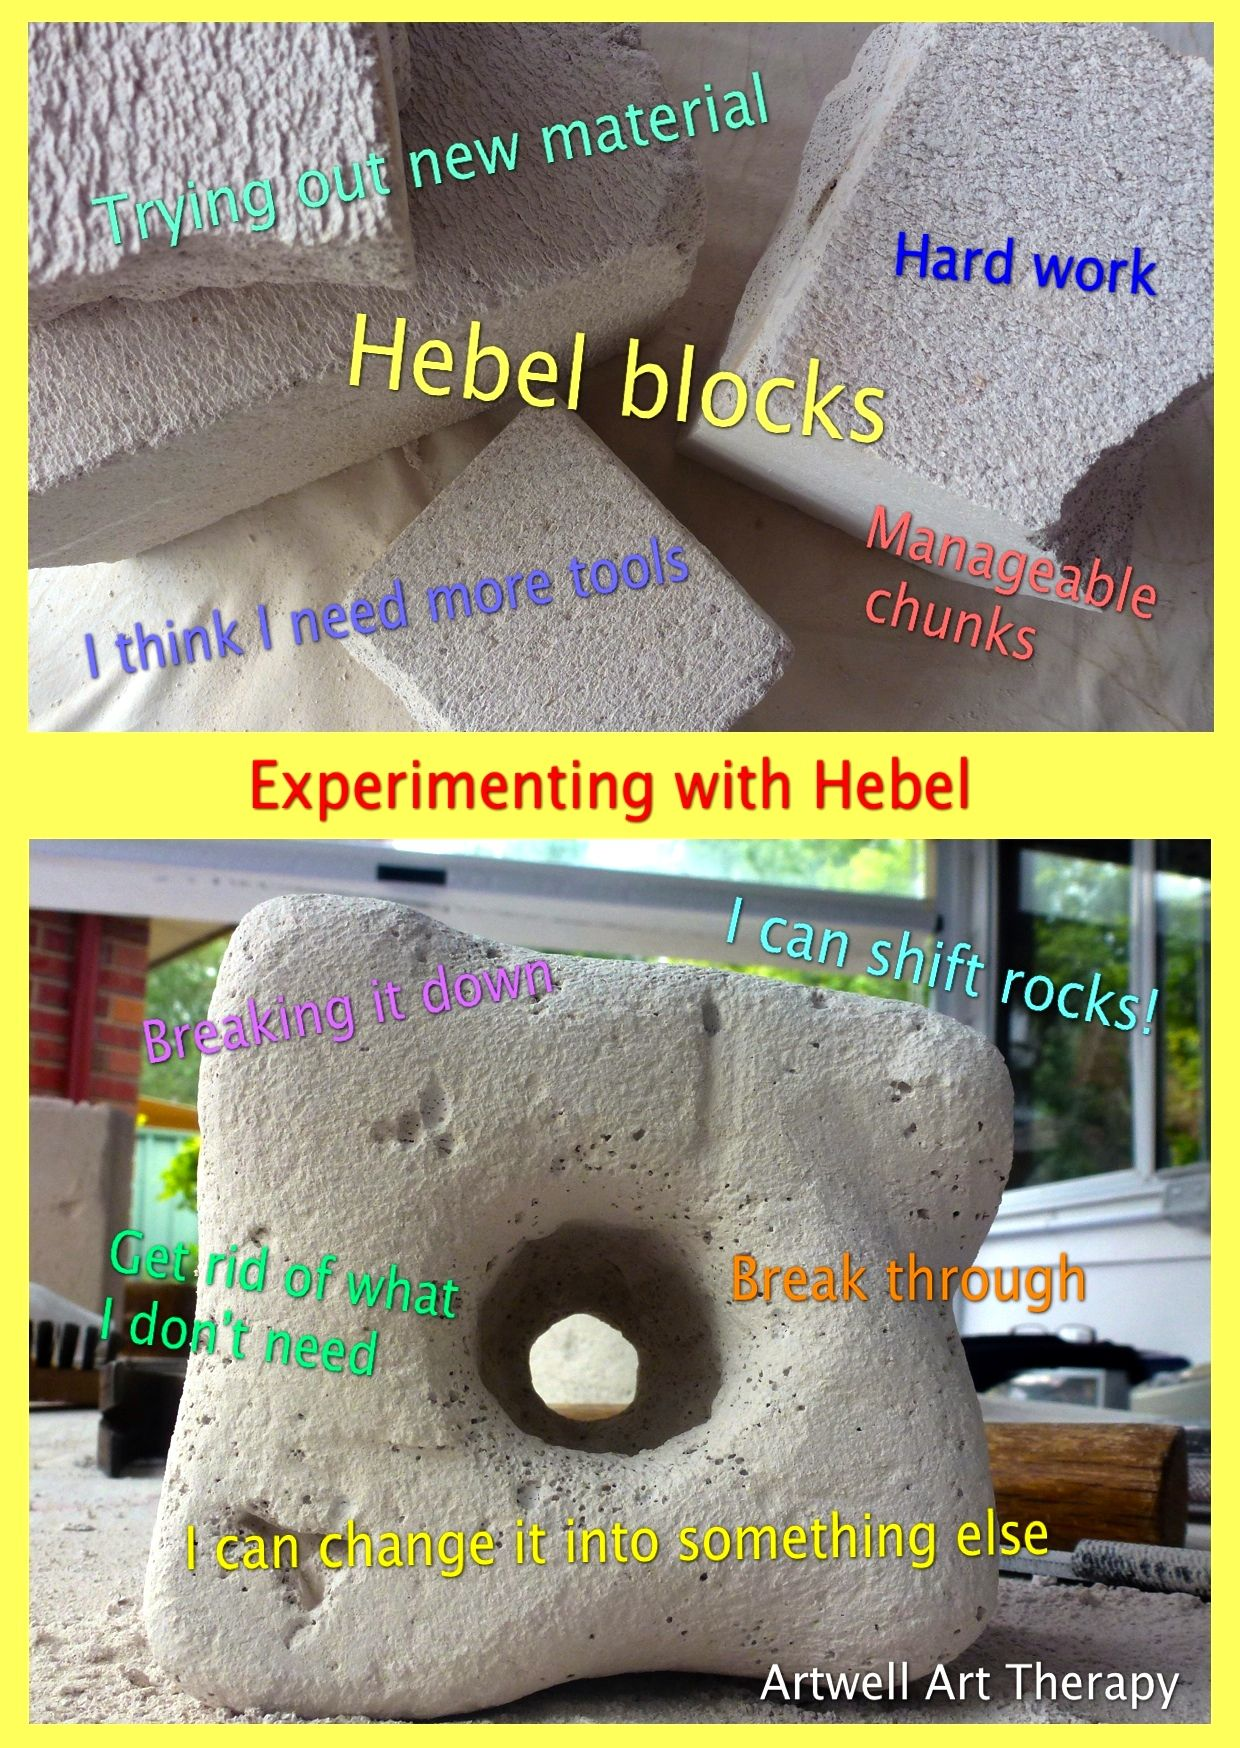 Working and creating with Hebel blocks lends itself to experiencing many facets of life. It's rich in metaphors.